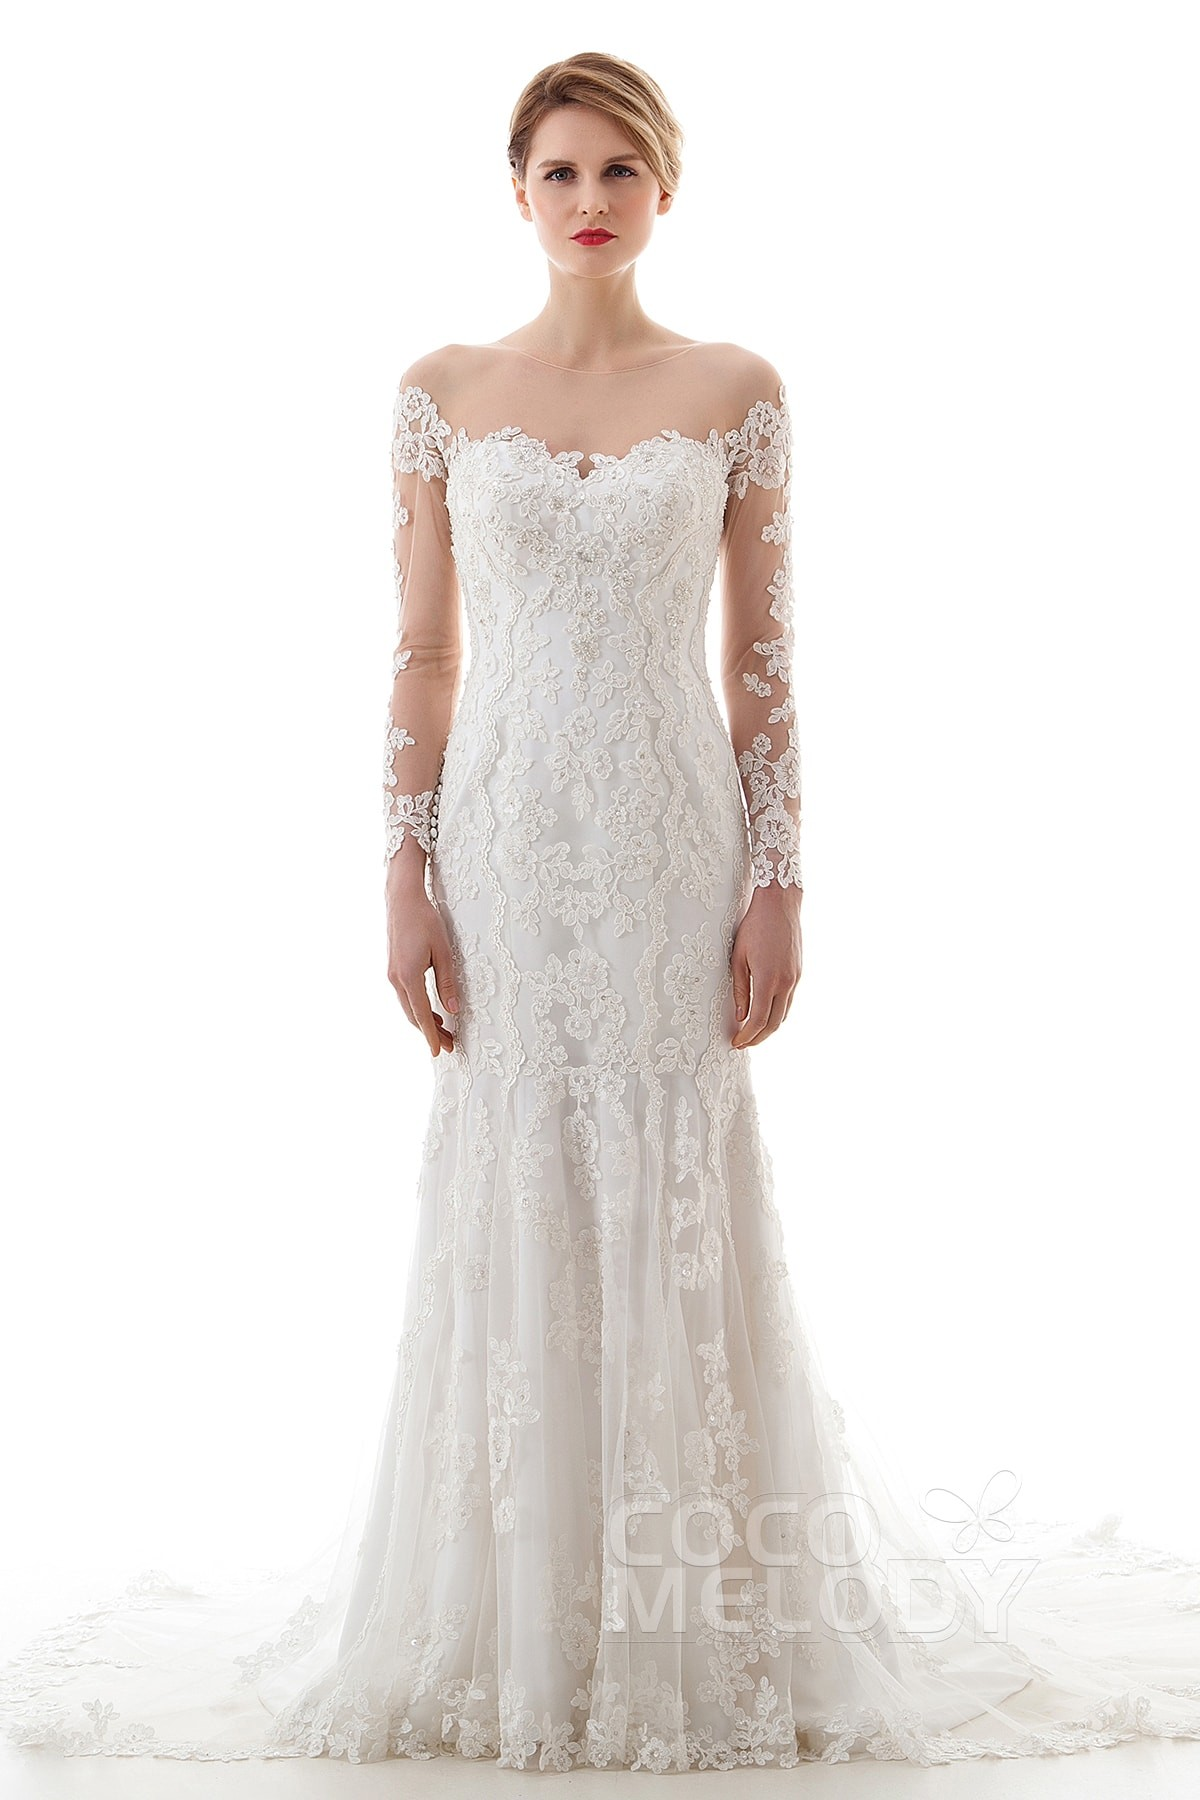 bdd6edd551a8 Charming Trumpet-Mermaid Illusion Dropped Court Train Lace and Tulle Ivory  Long Sleeve Buttons Wedding Dress with Appliques and Beading LD4620